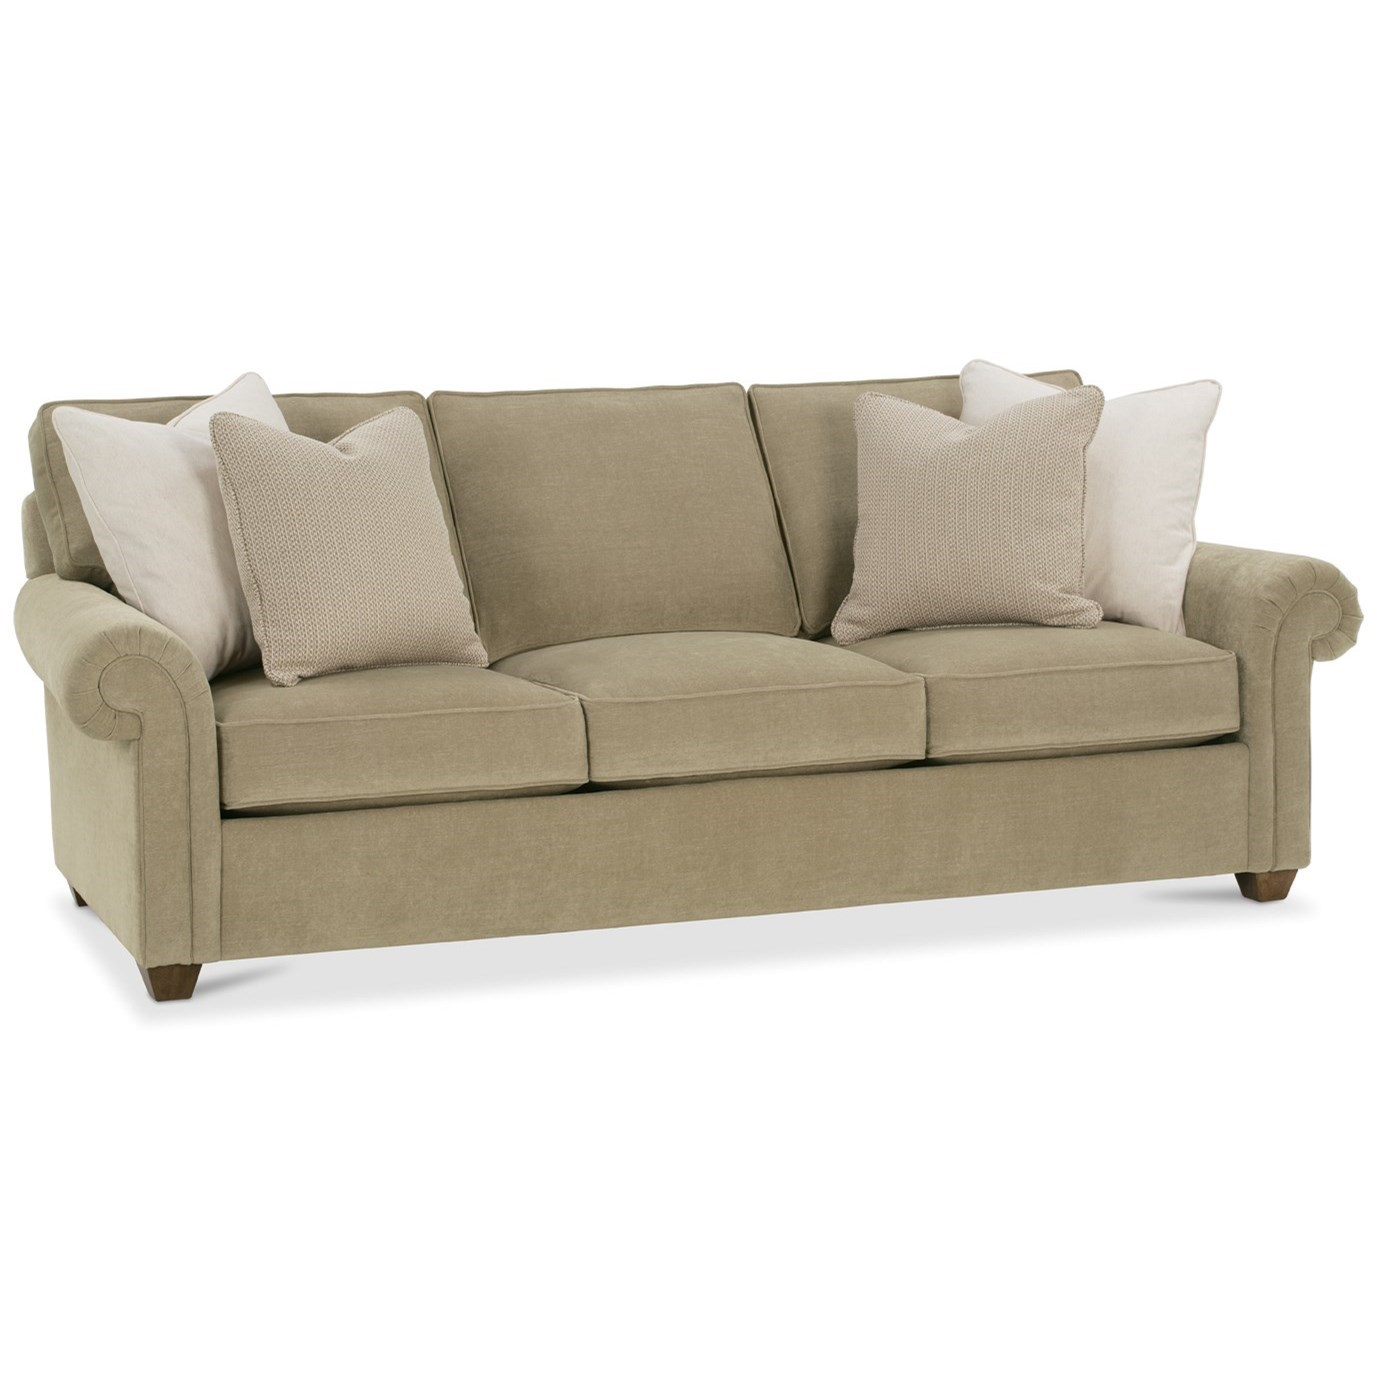 Morgan Traditional Large Sofa by Rowe at Baer's Furniture